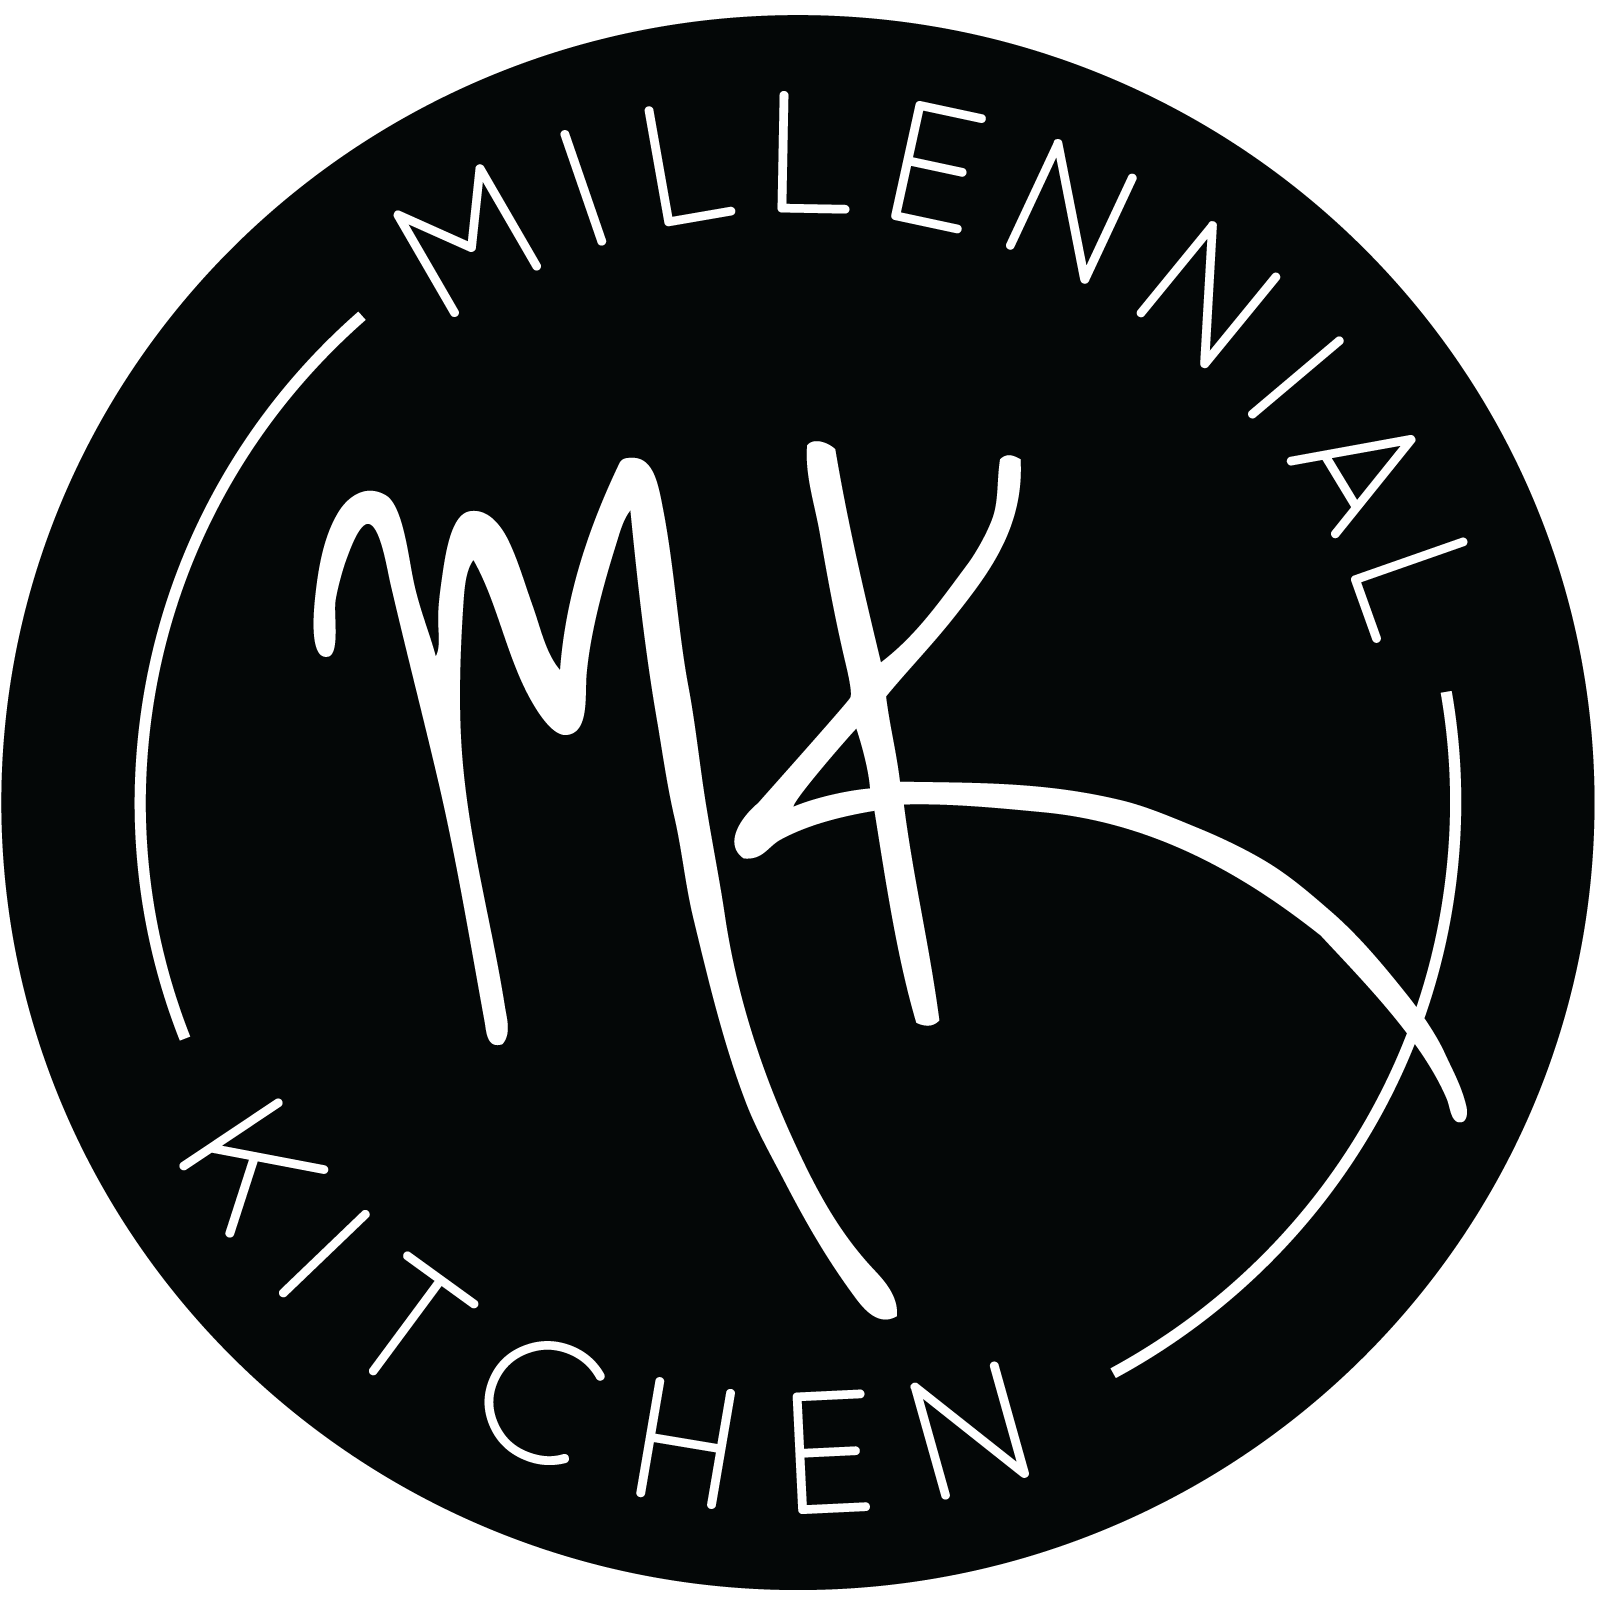 Millennial Kitchen has moved to www.millennialkitchen.com